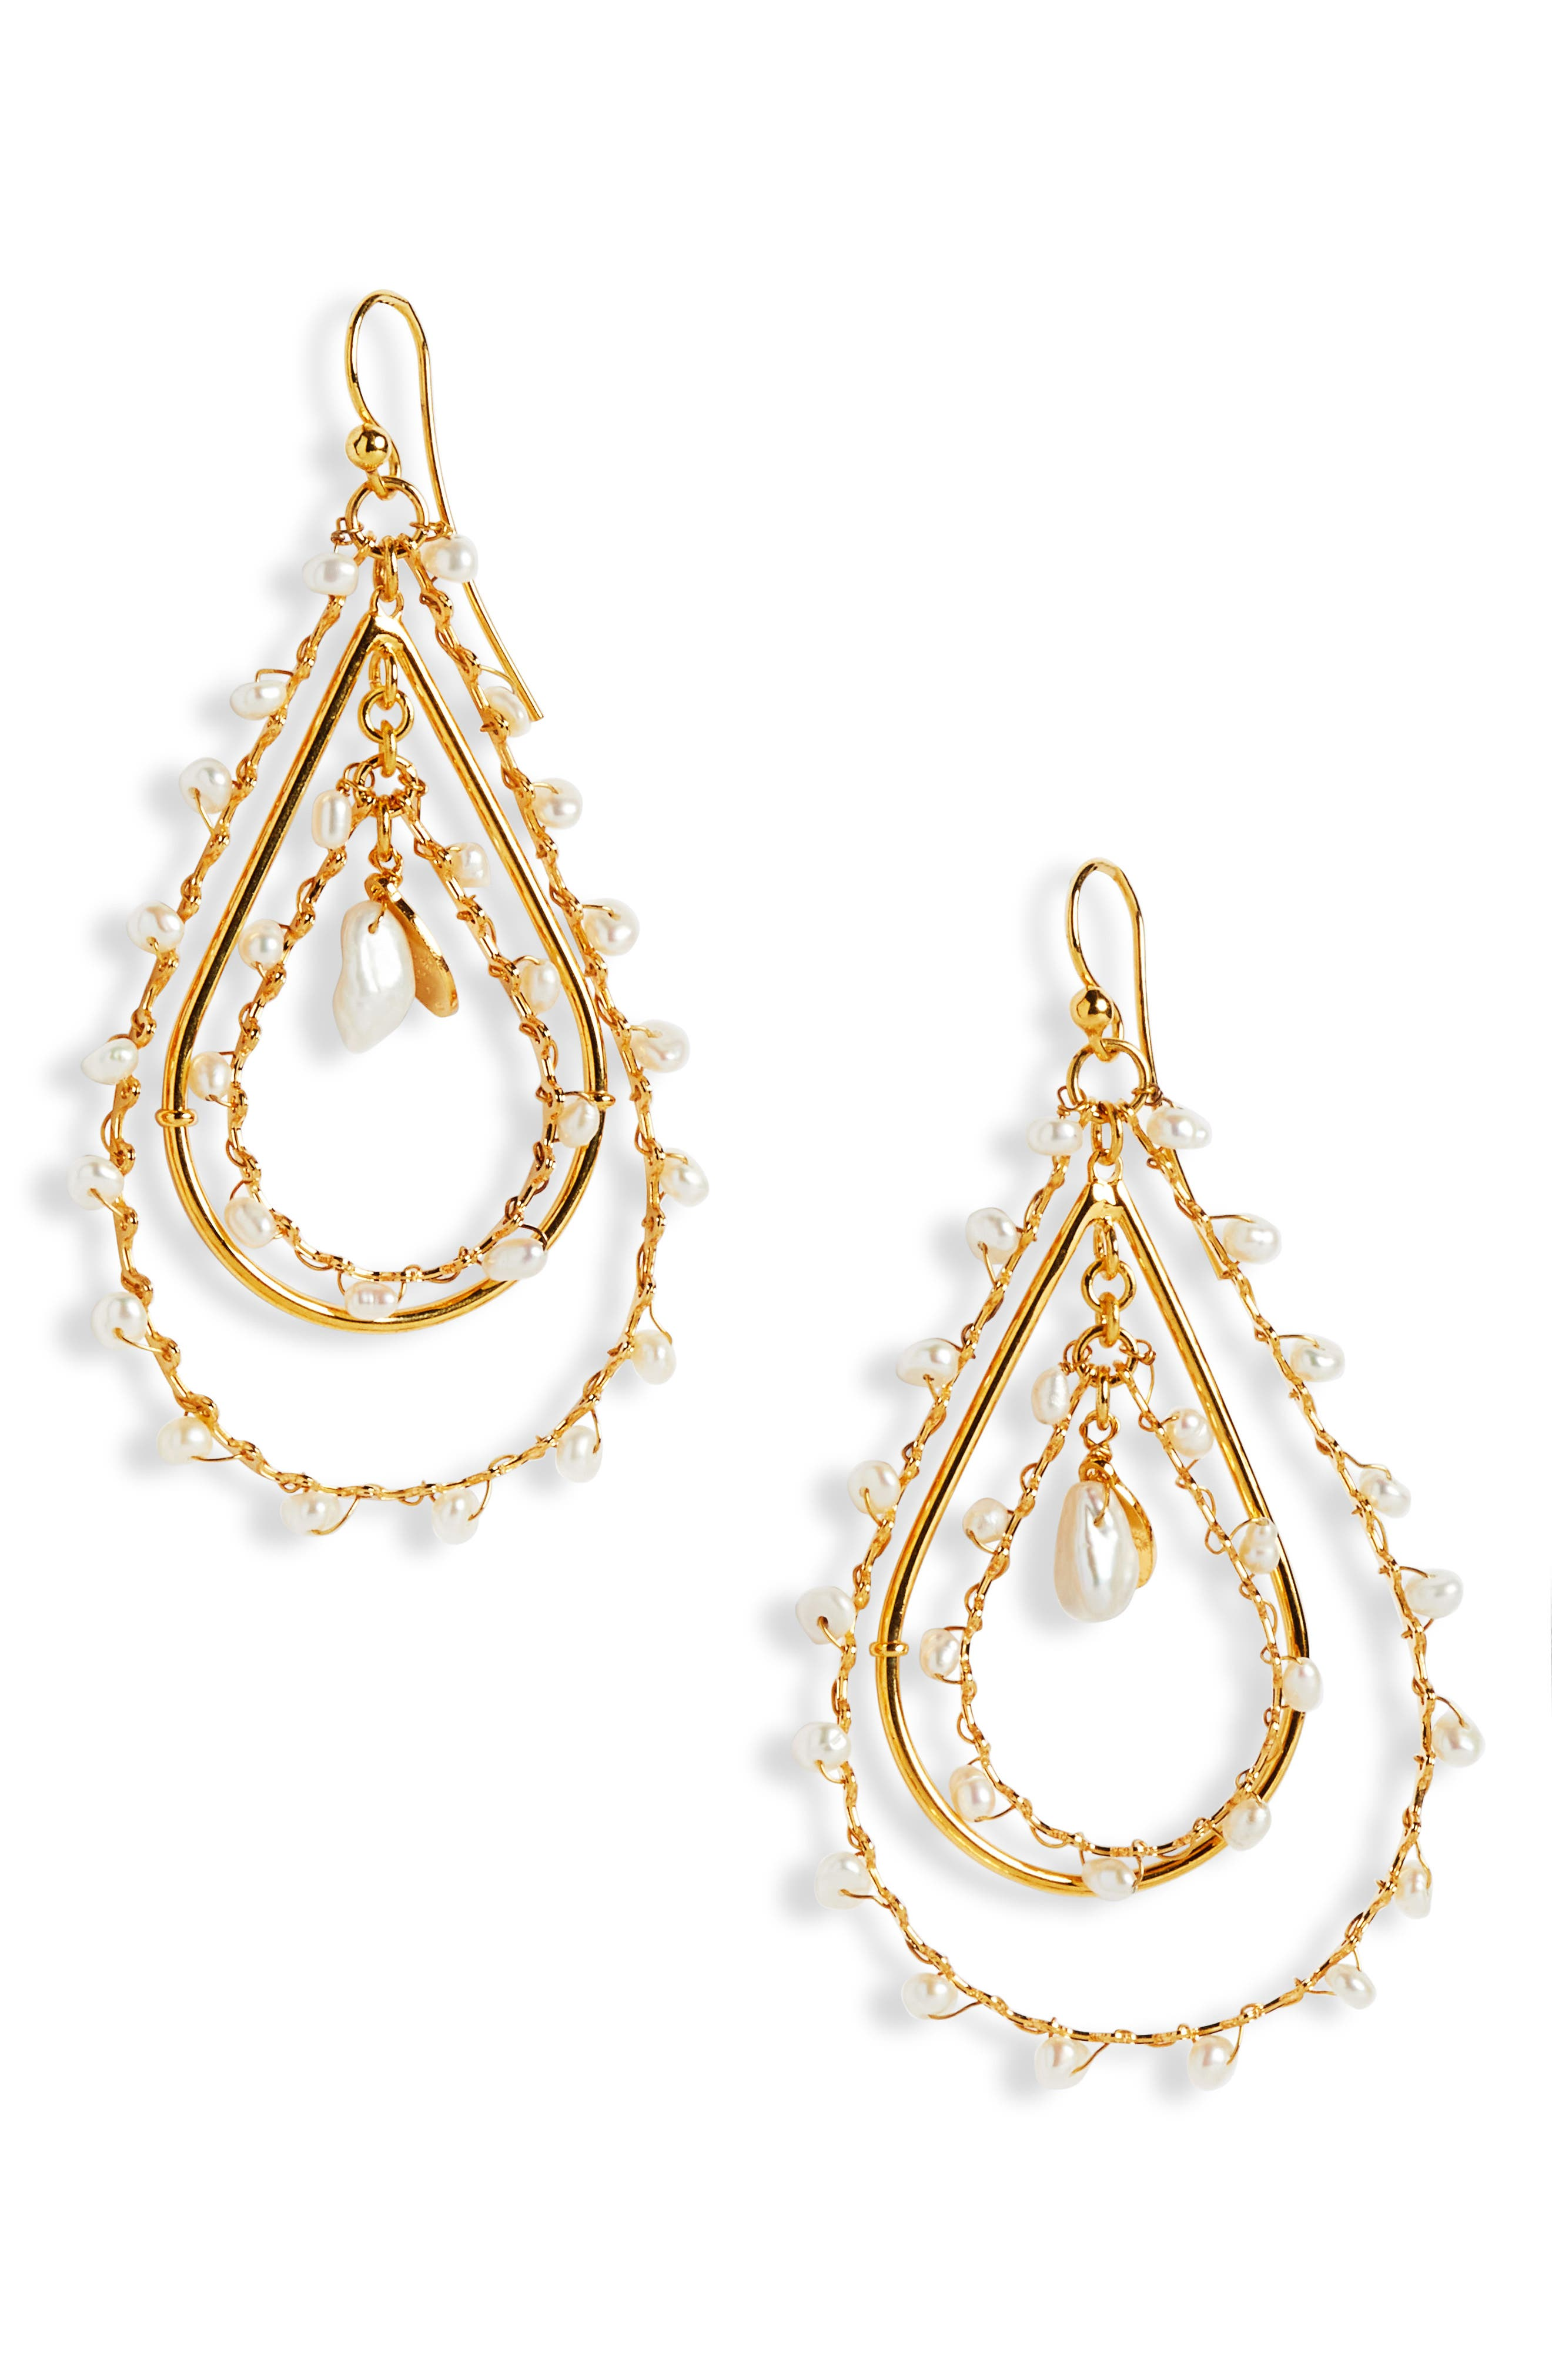 GAS BIJOUX Large Mother-Of-Pearl Pear Drop Earrings in Gold